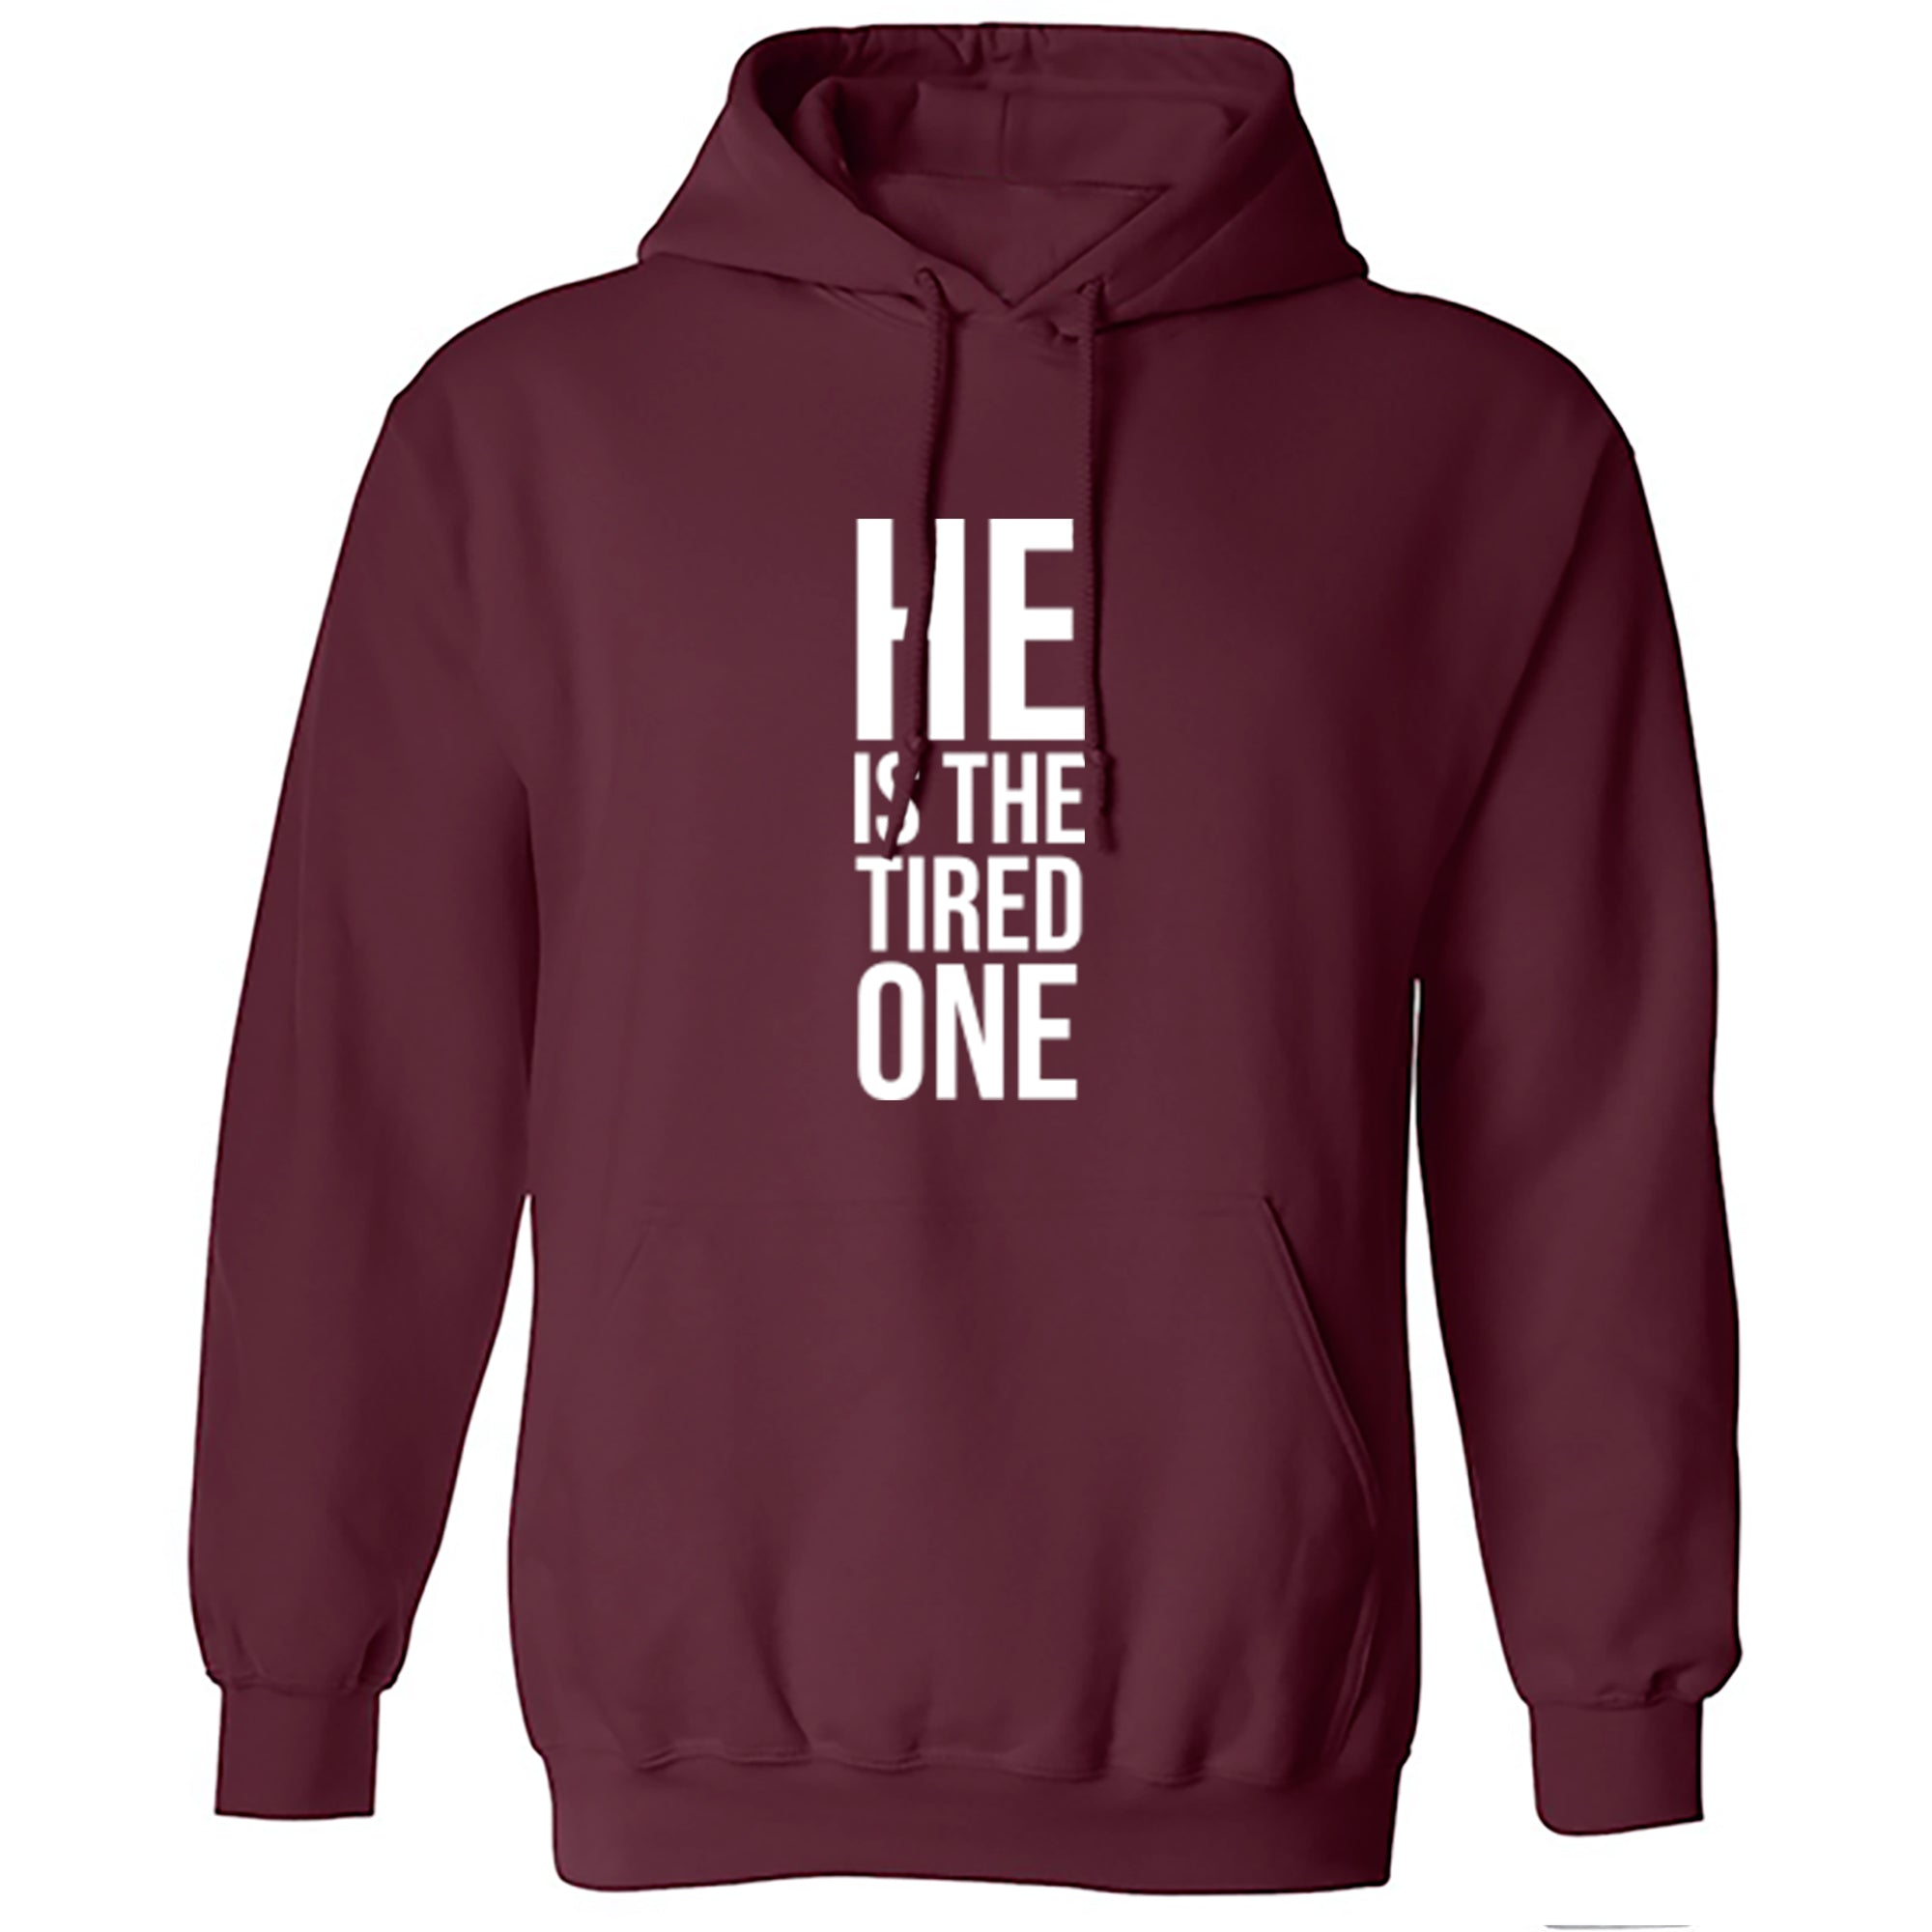 He Is The Tired One Unisex Hoodie S0339 - Illustrated Identity Ltd.